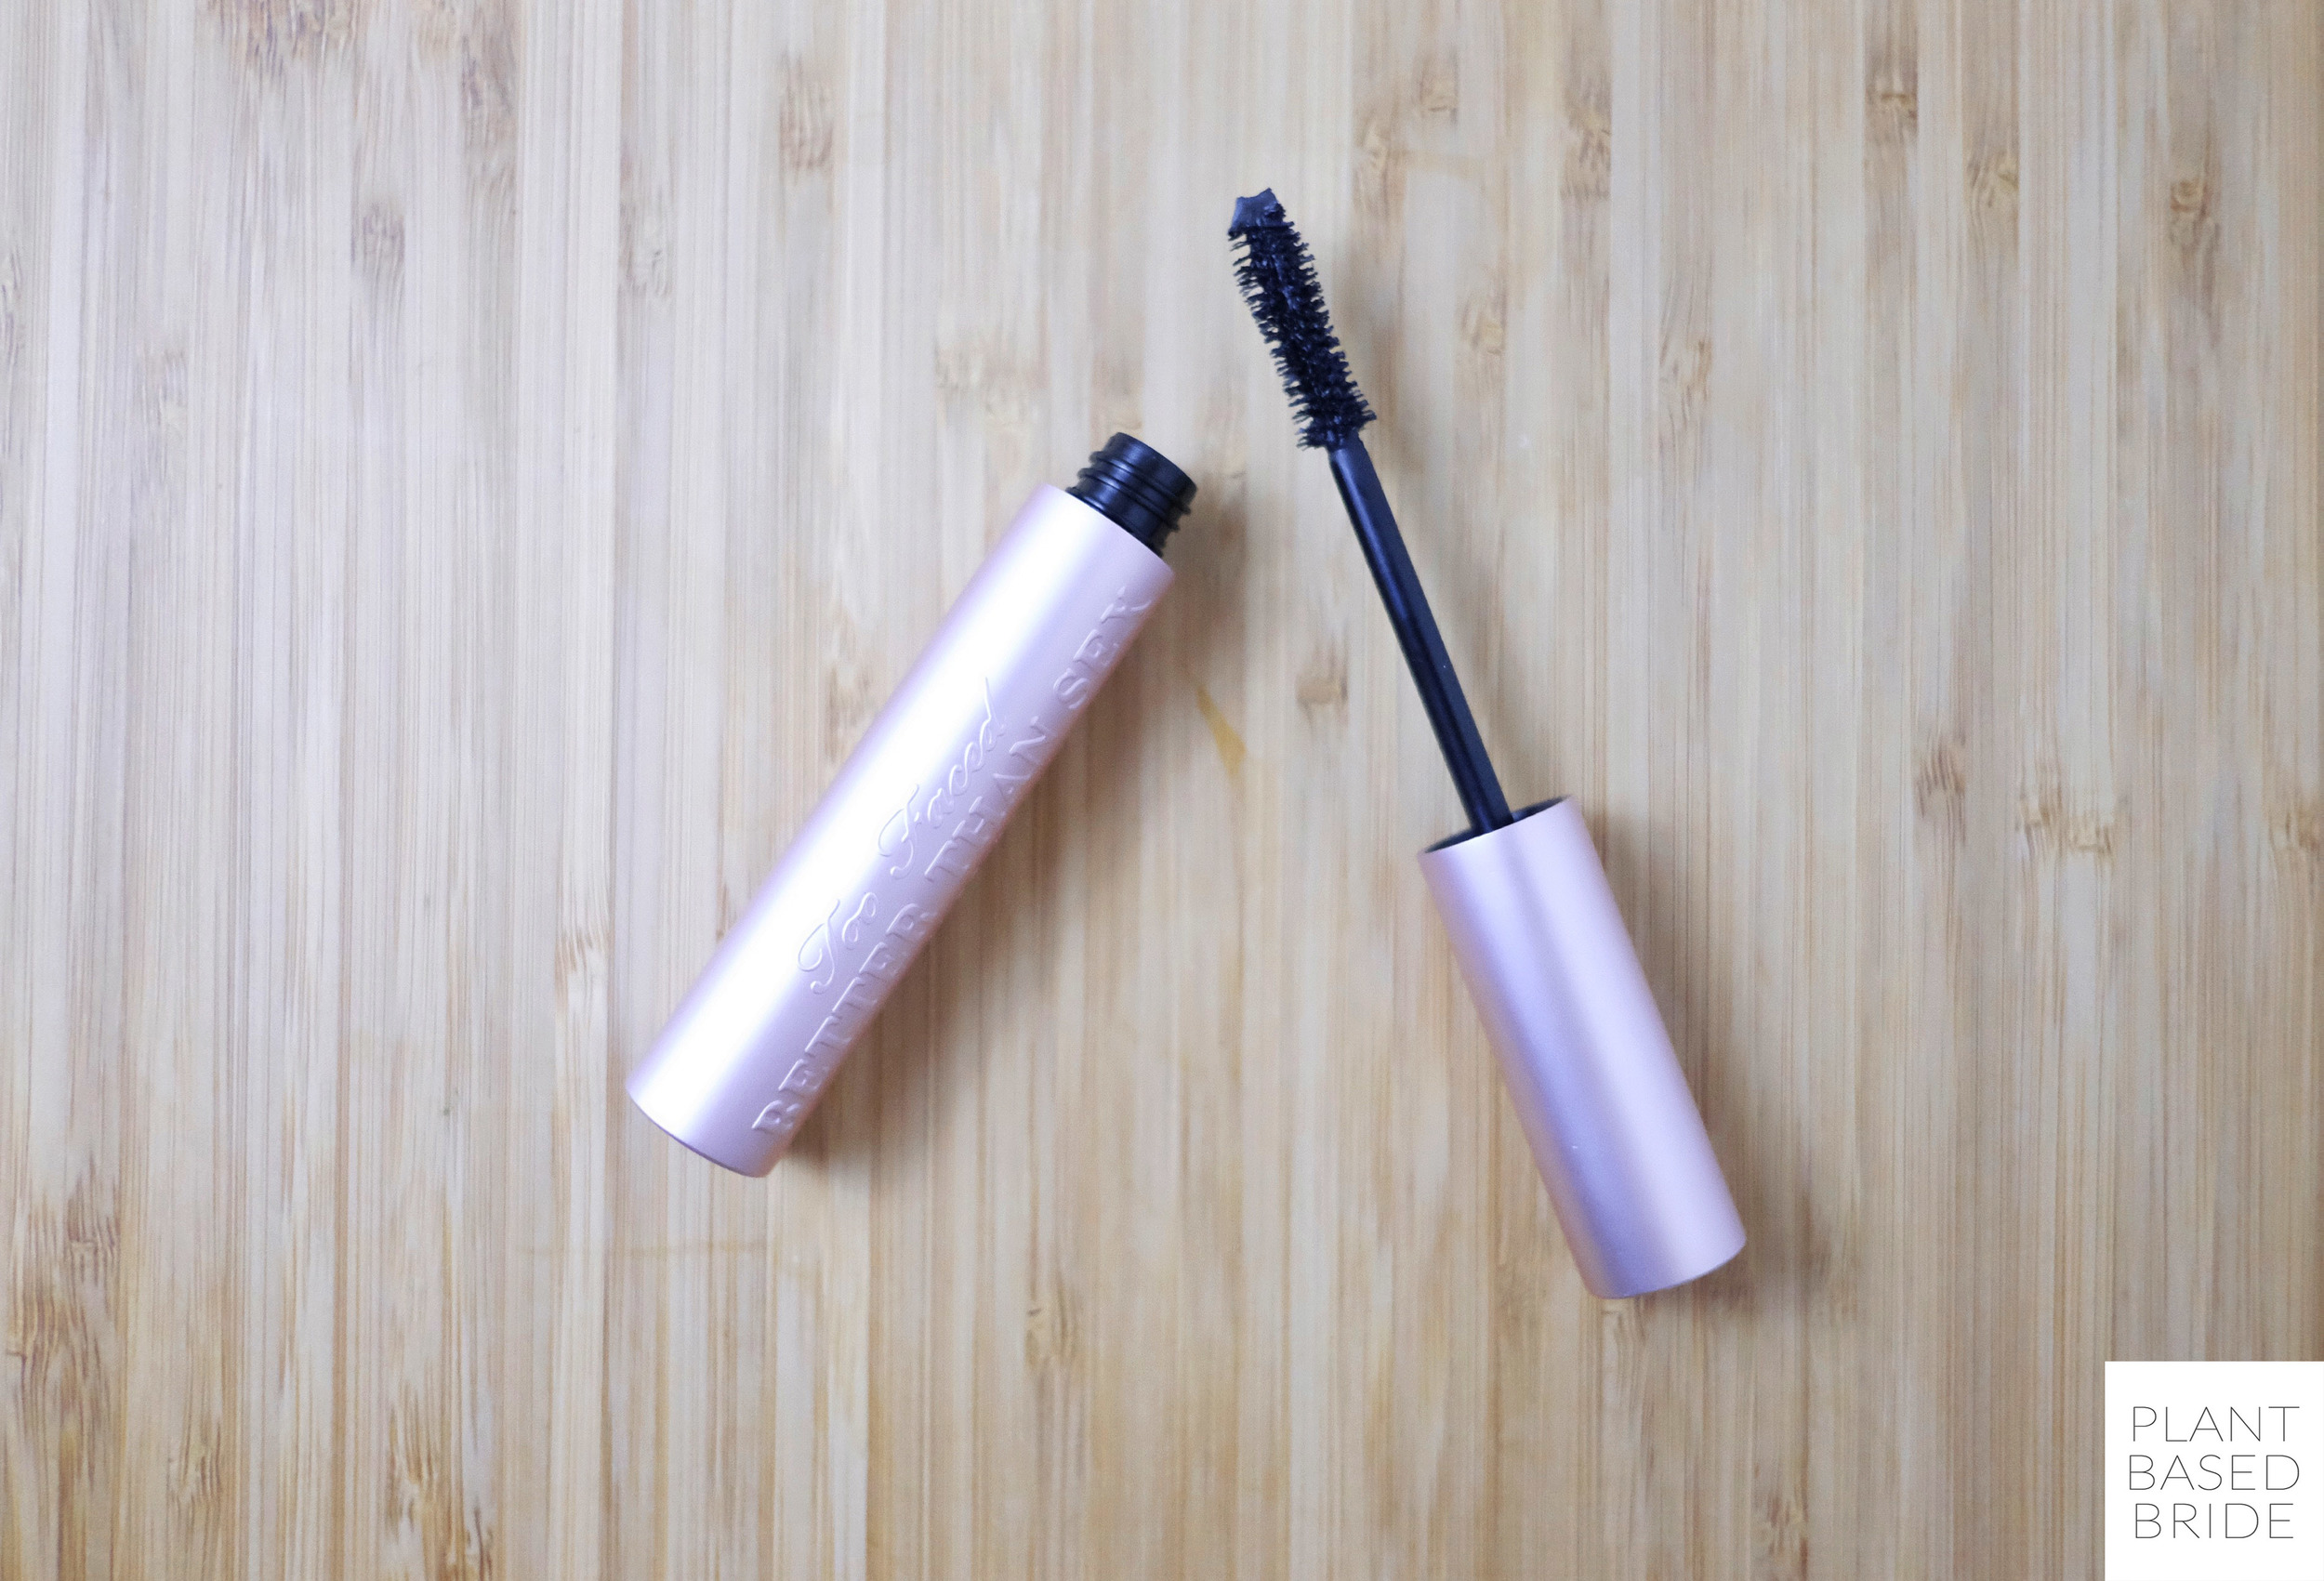 Too Faced Better Than Sex Mascara Review // Vegan & Cruelty-Free // Plant Based Bride